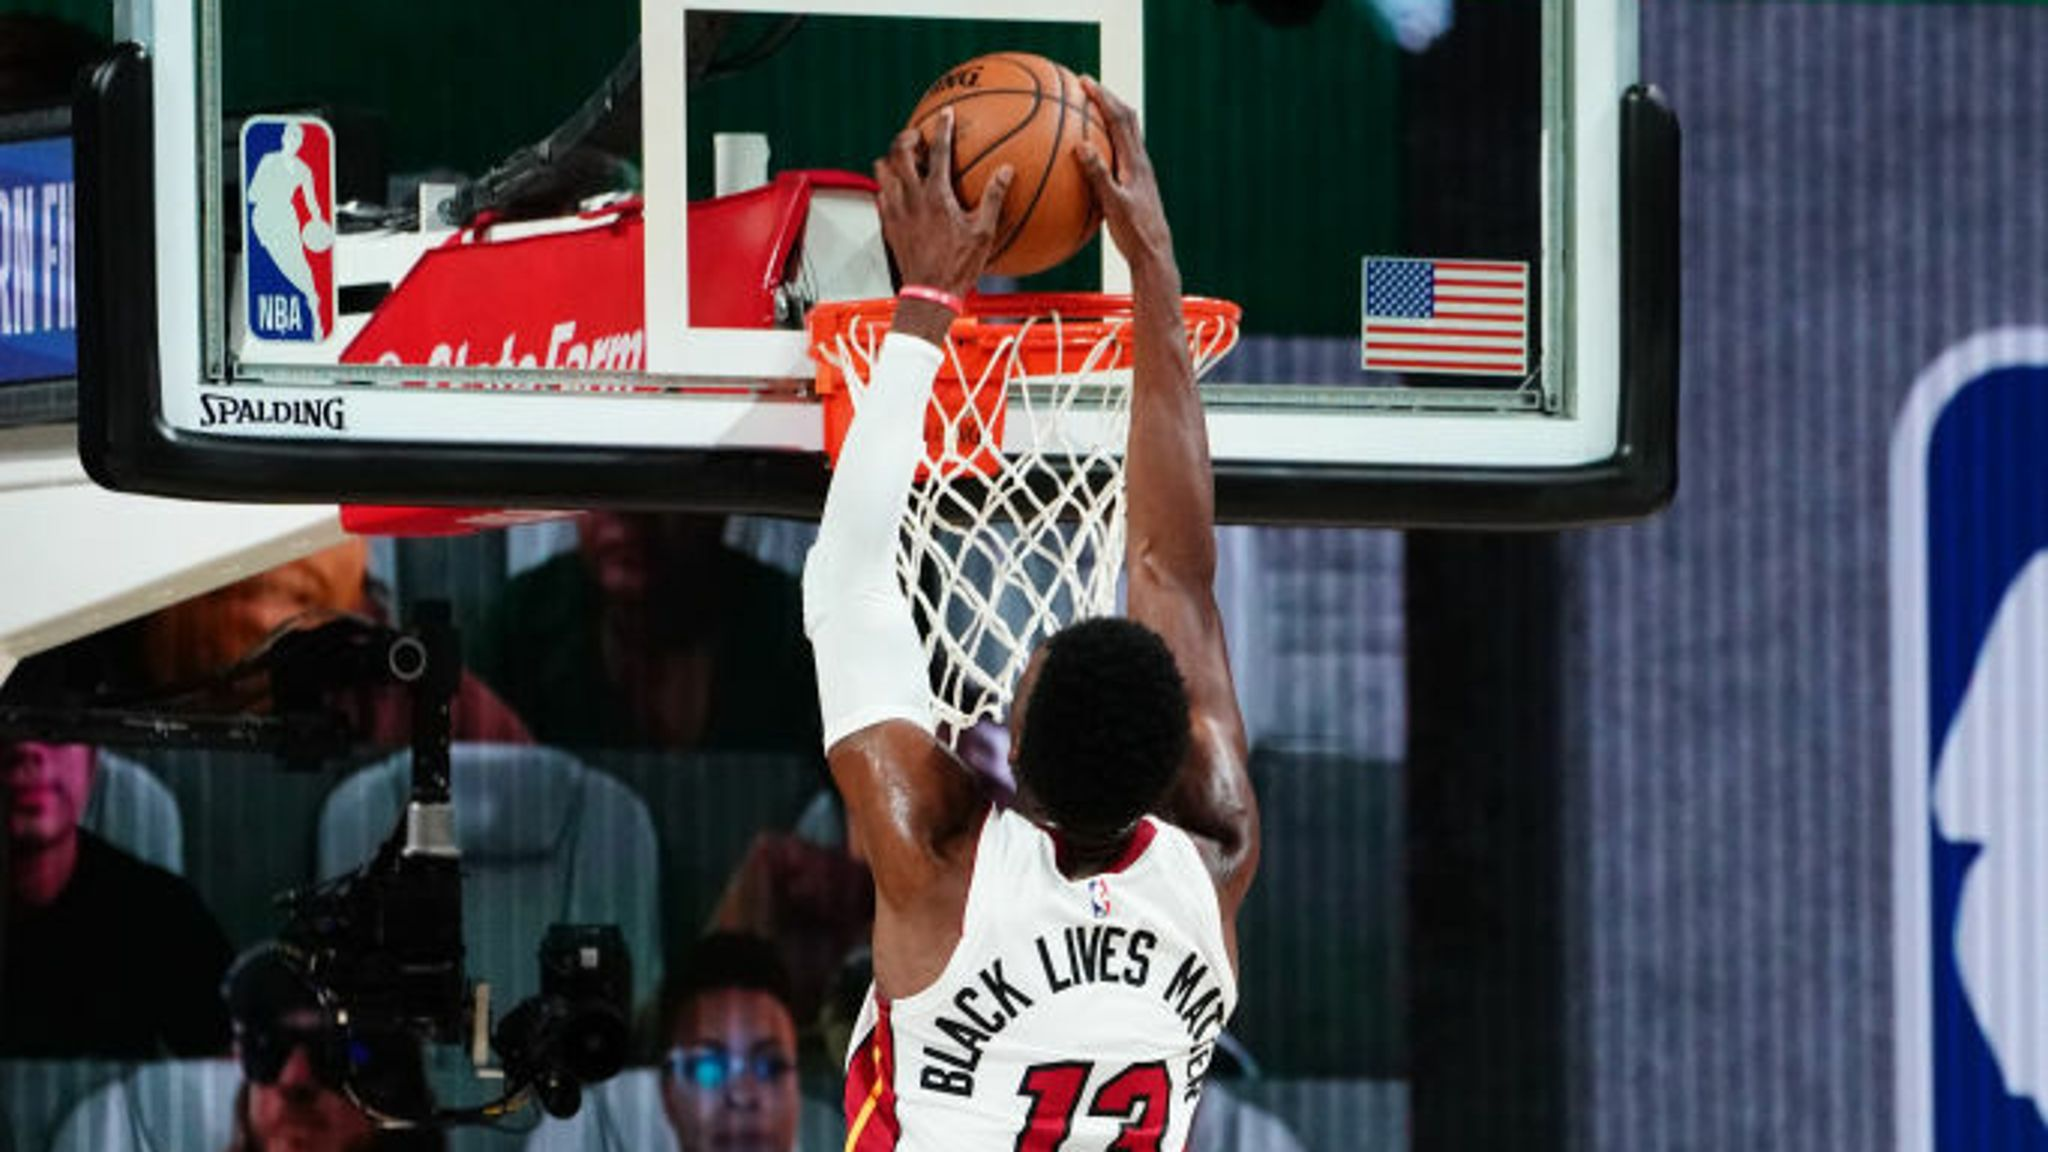 Bam Adebayo #13 of the Miami Heat dunks the ball against the Boston Celtics during Game Two of the Eastern Conference Finals of the NBA Playoffs on September 17, 2020 at the AdventHealth Arena at ESPN Wide World Of Sports Complex in Orlando, Florida.